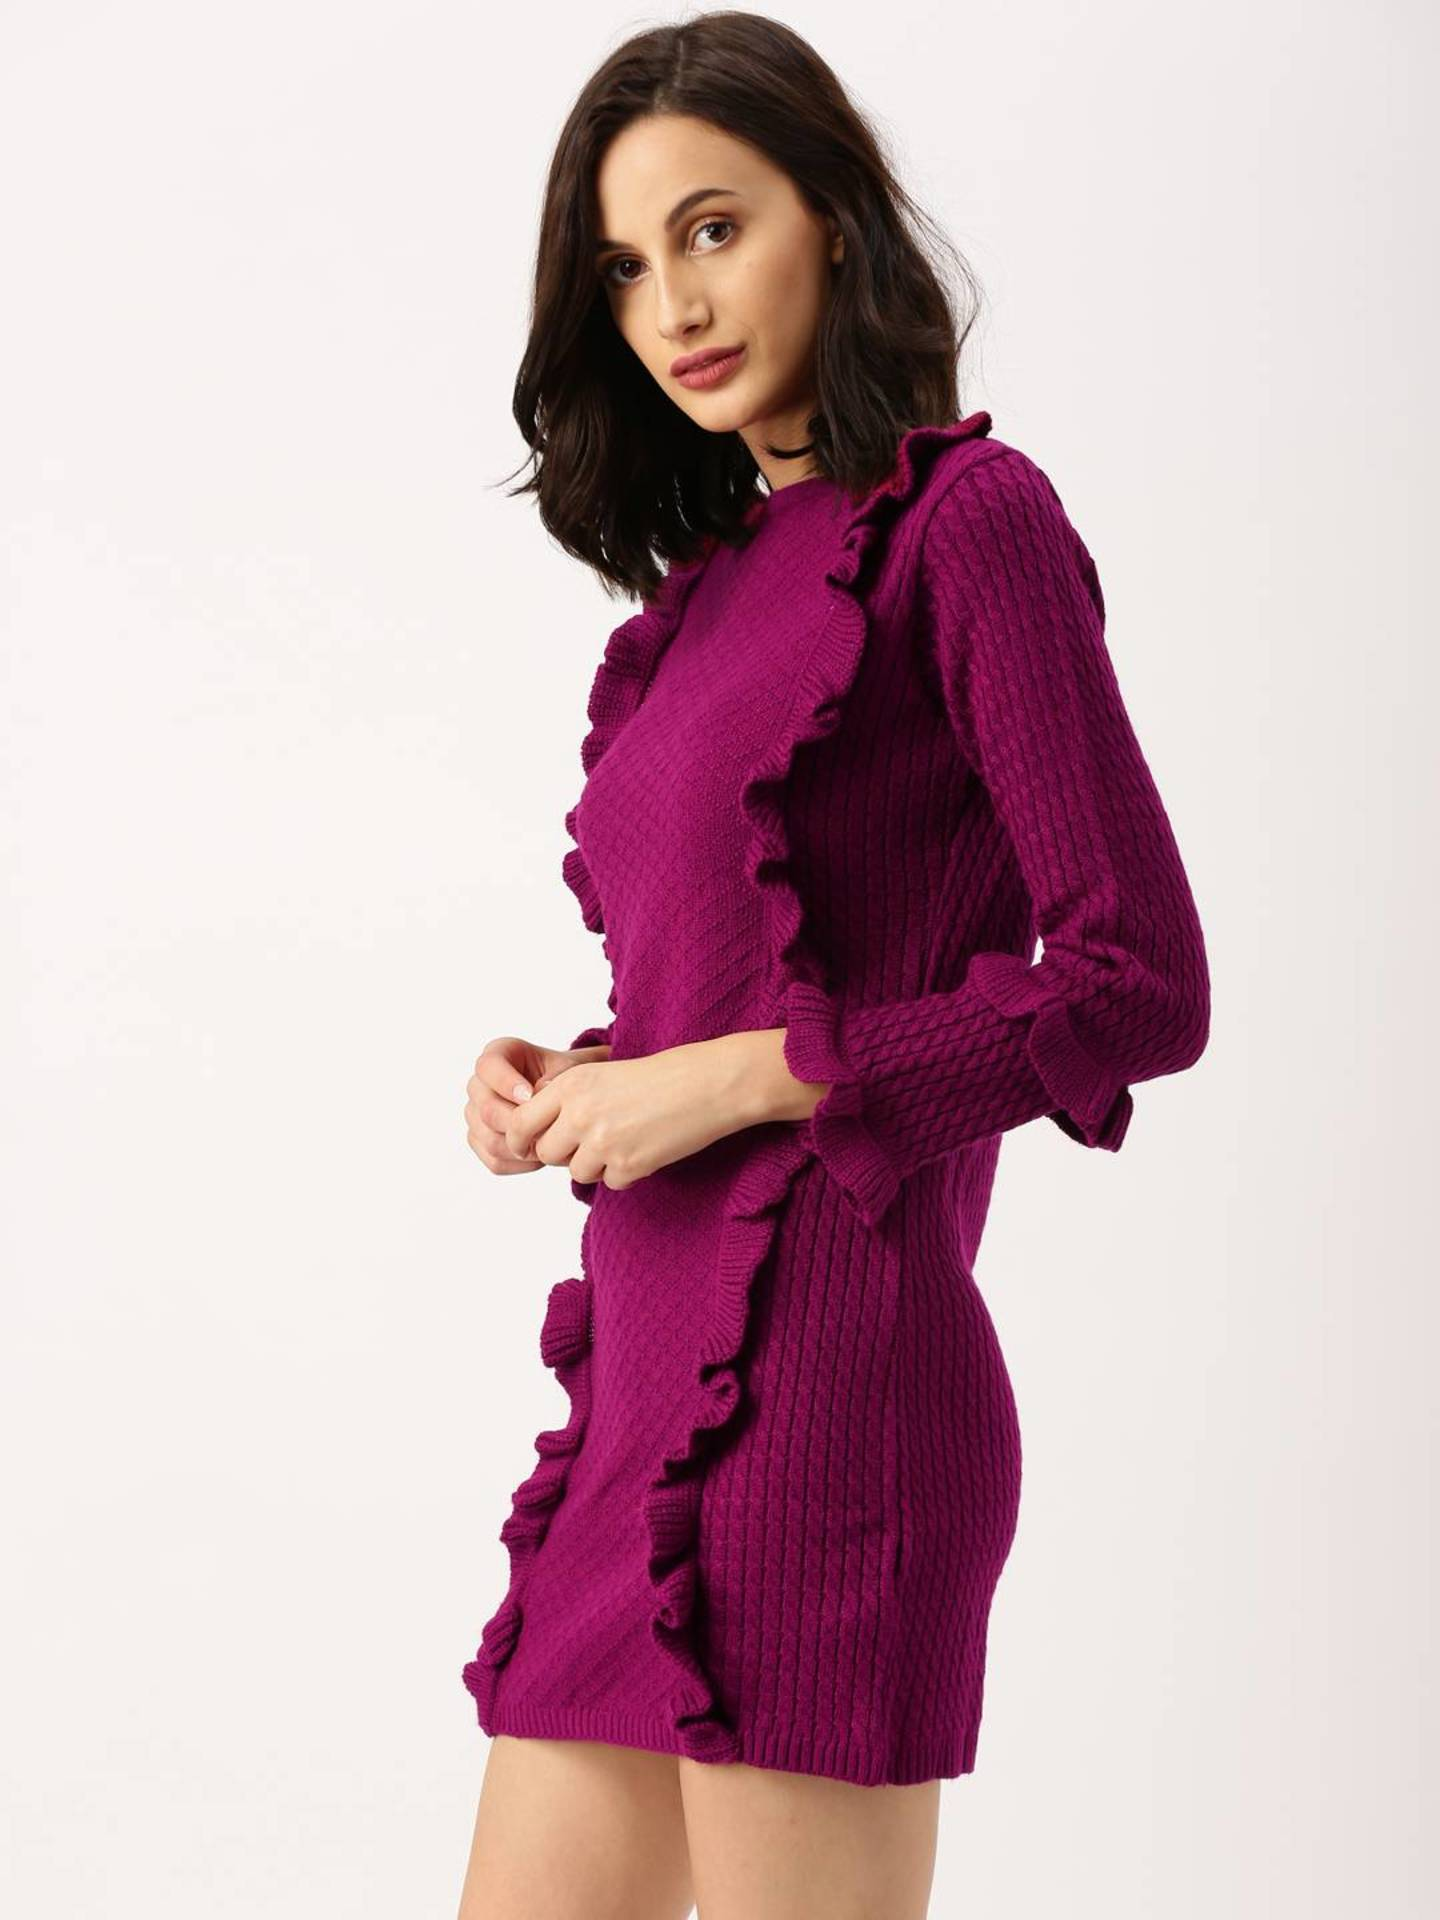 shopaholicpals - 11504689928113-all-about-you-Women-Magenta-Self-Design-Longline-3271504689927934-2